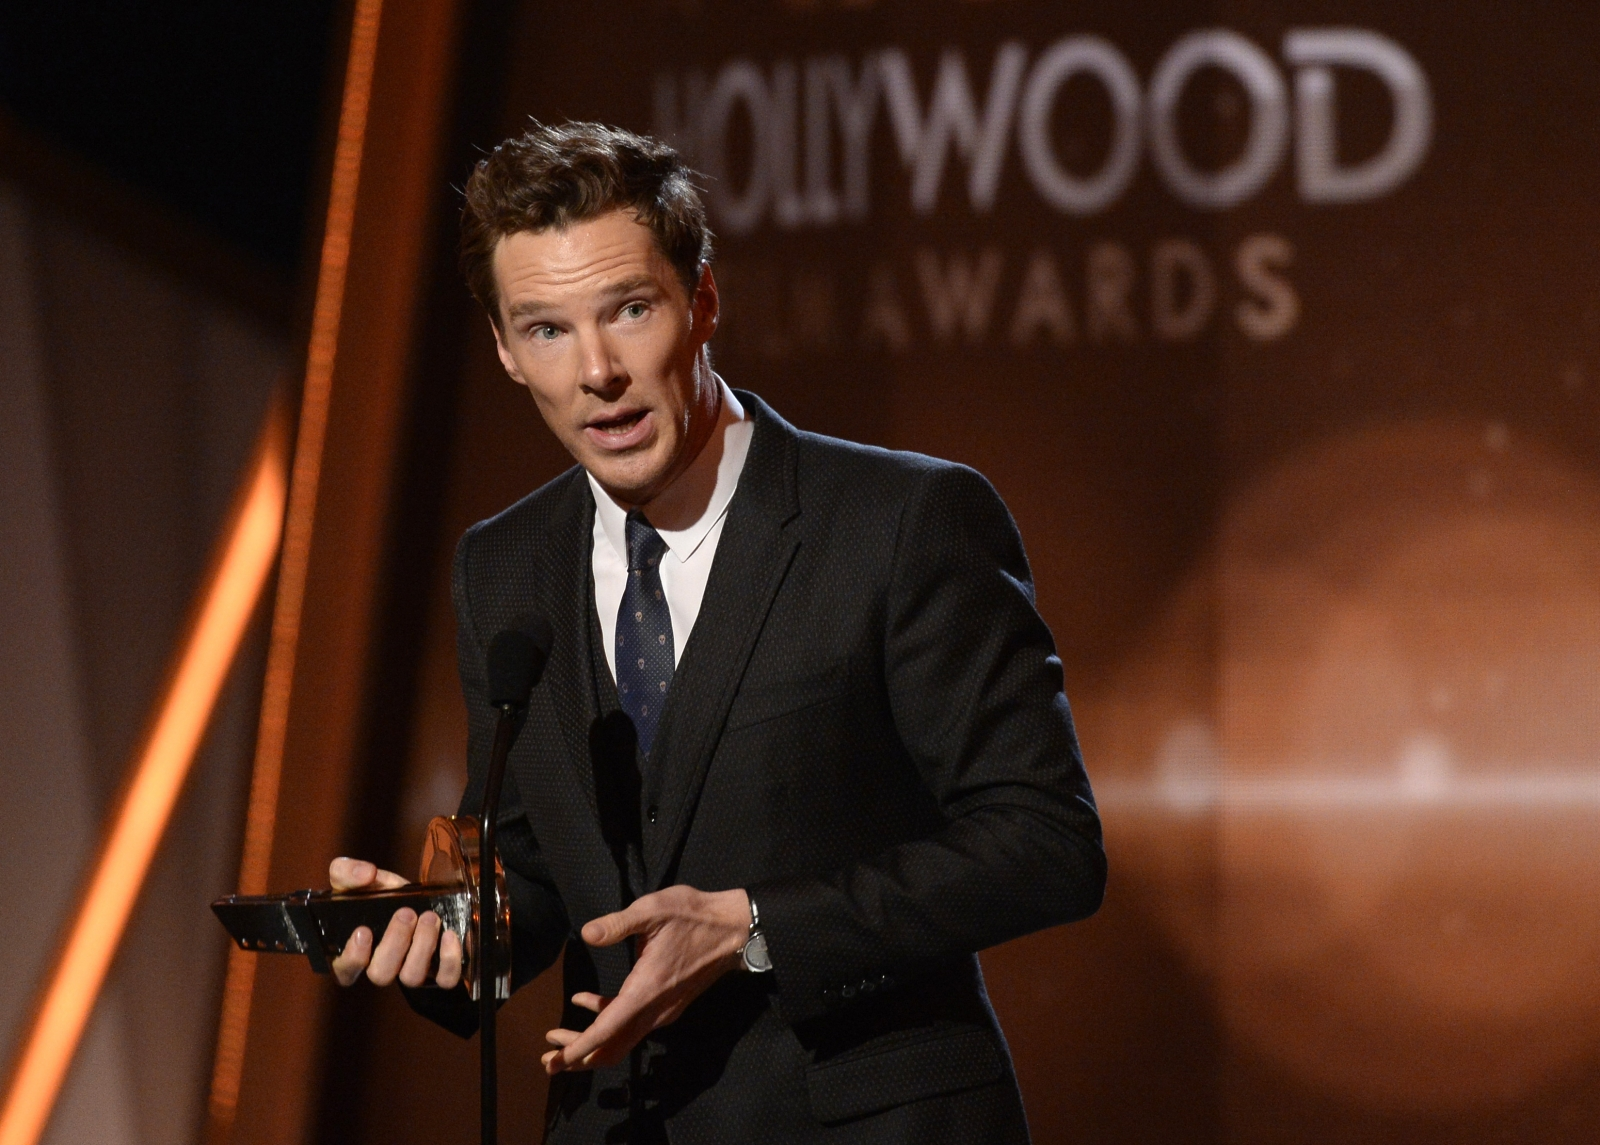 Actor Benedict Cumberbatch has apologised for his 'inappropriate language', using the term 'coloured' to refer to black people